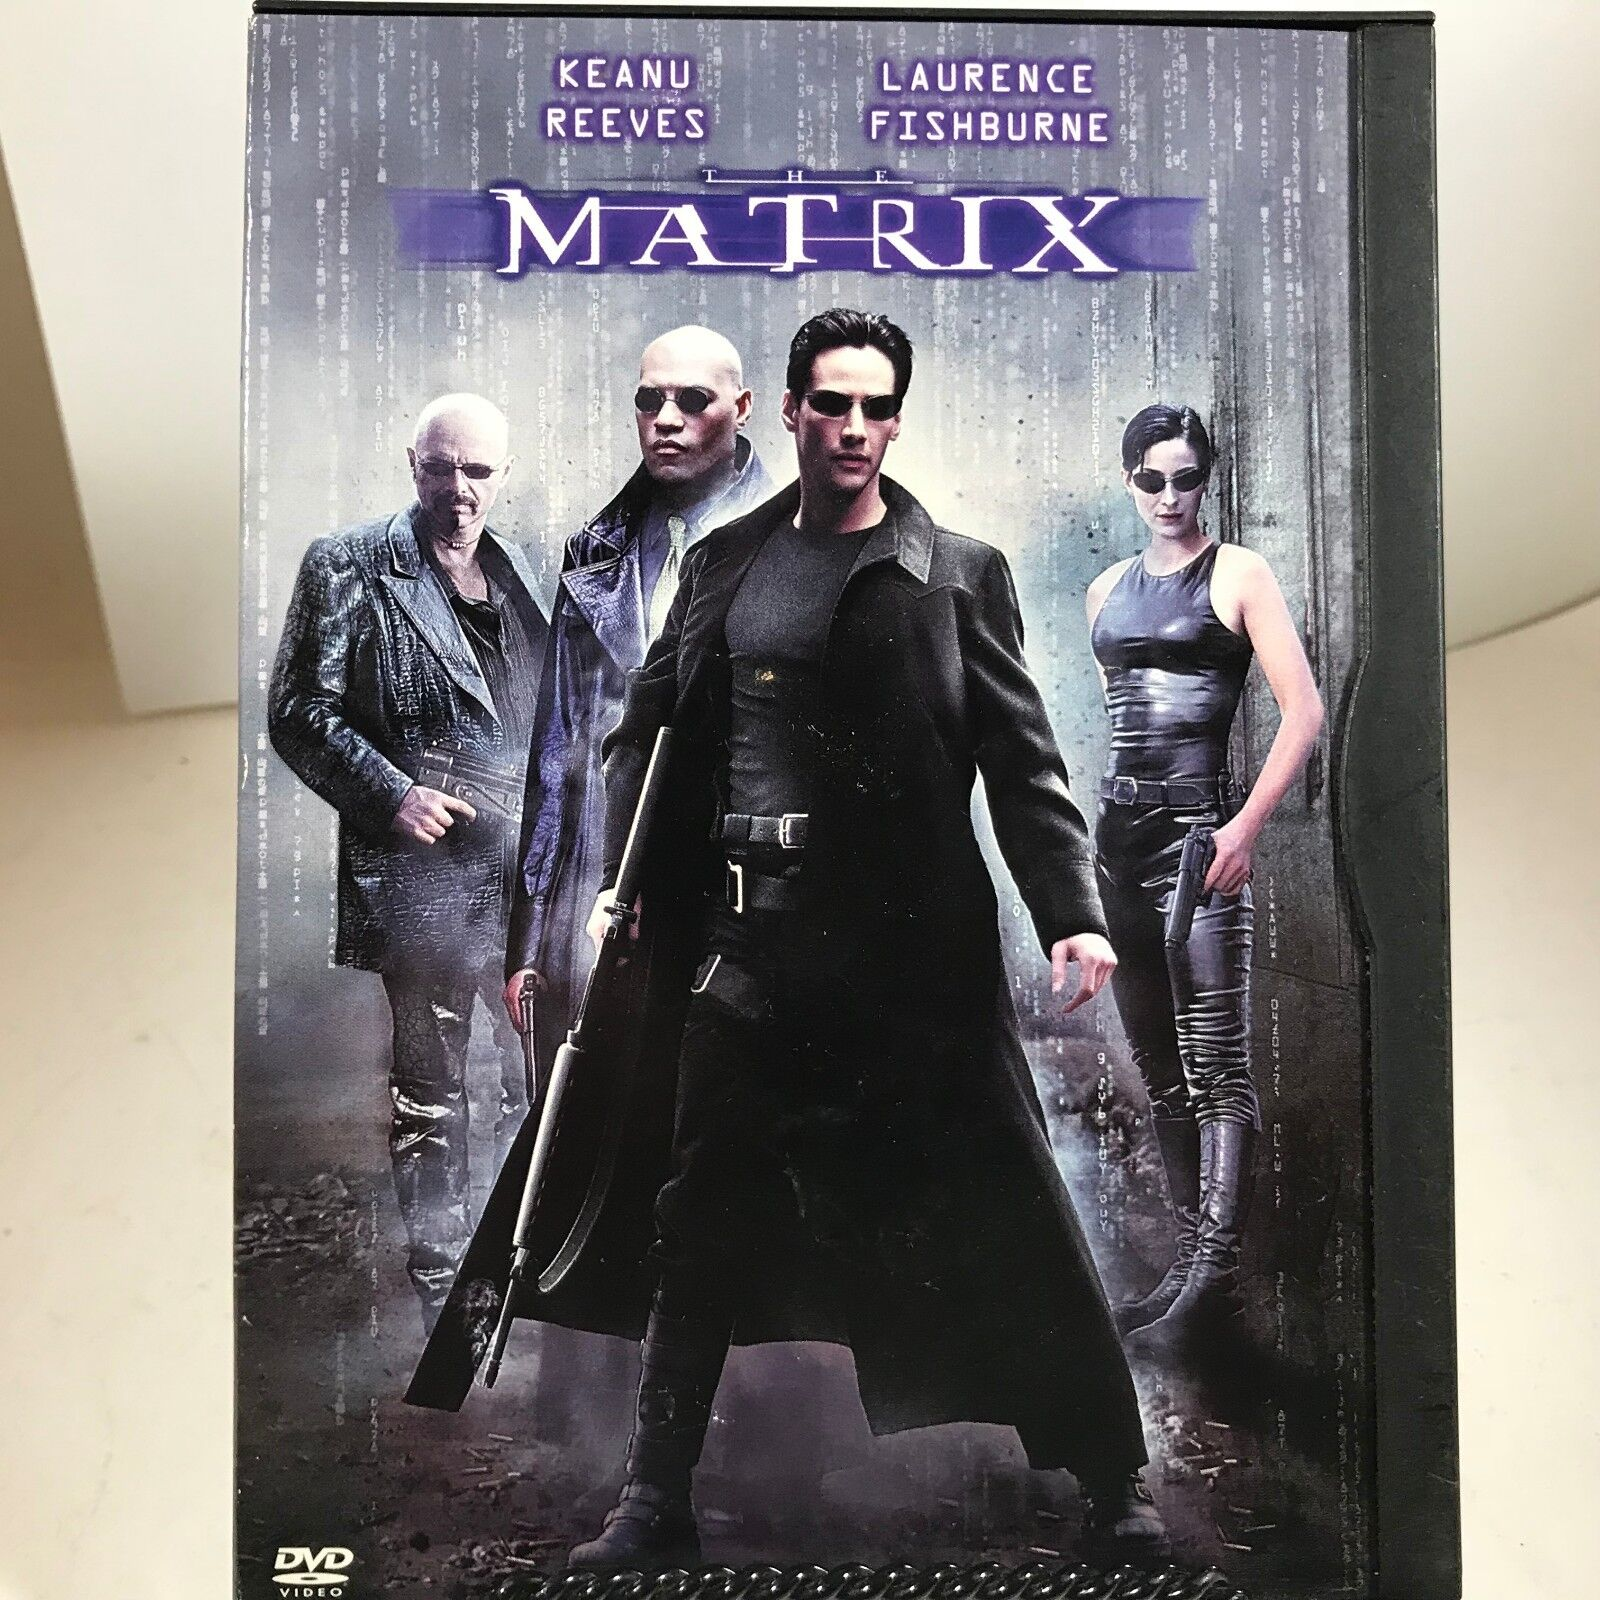 DVD - The Matrix - Keanu Reeves, Laurence Fishburne - $2.33